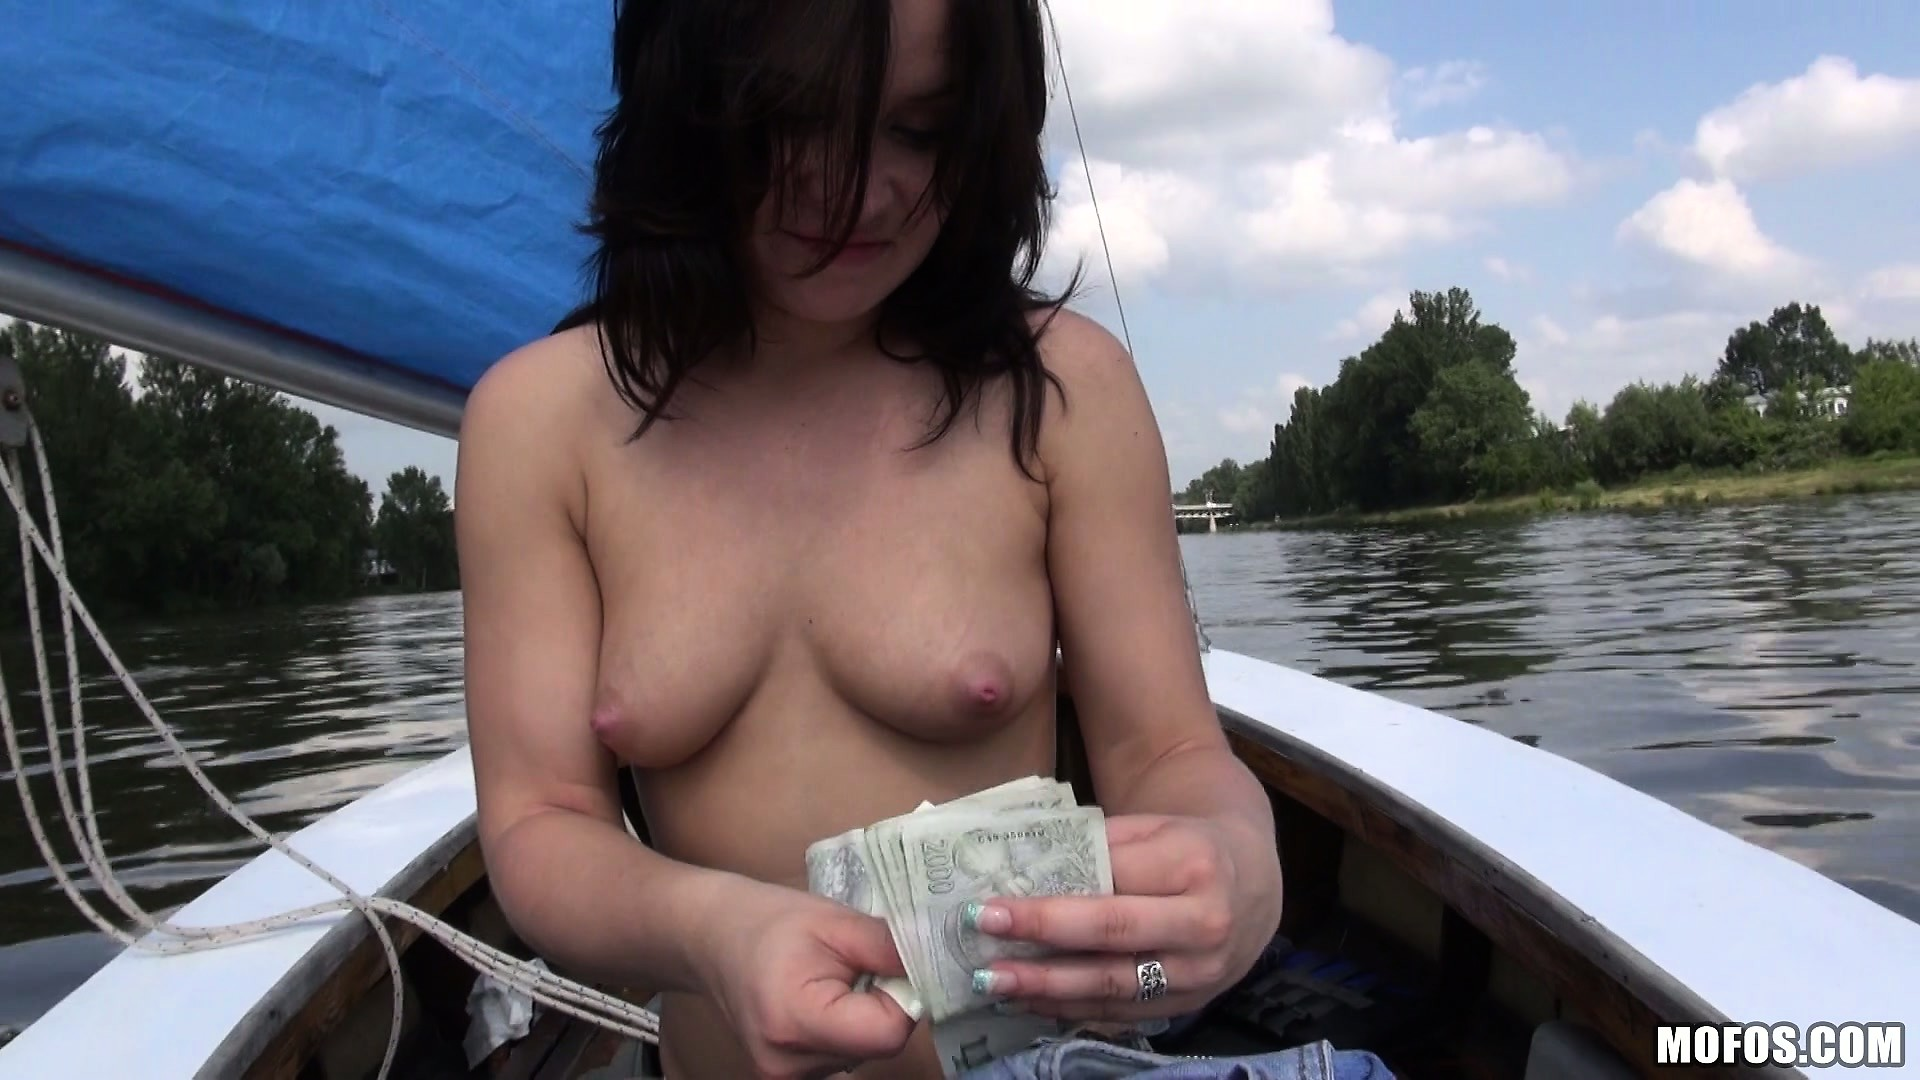 Porno Video of Naughty And Petite Skank Gives The Cameraman Some Head On A Boat